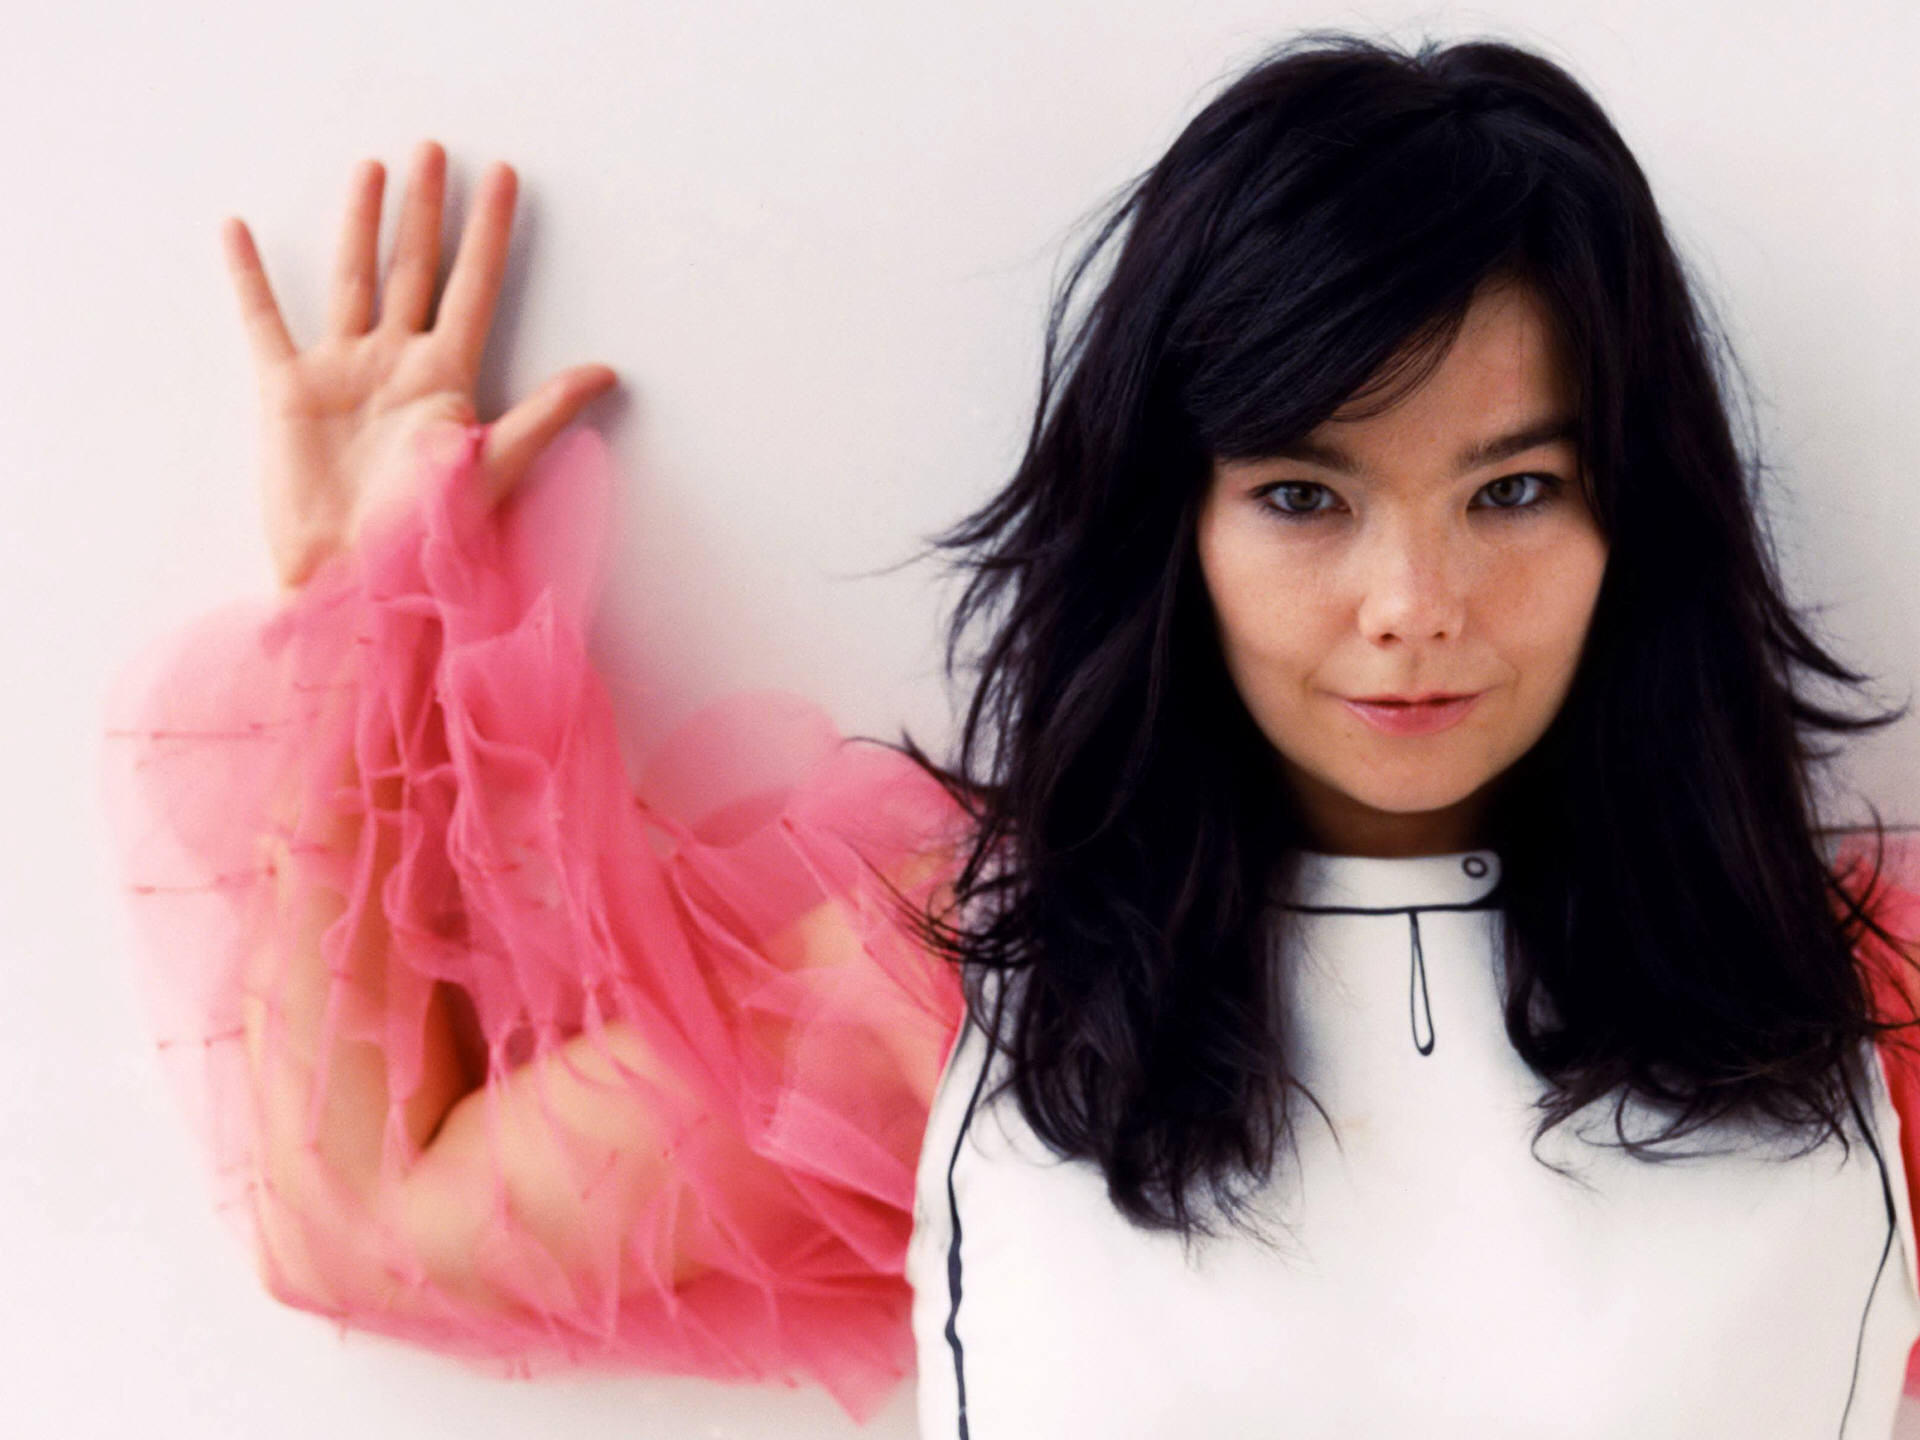 singer/songwriter Bjork